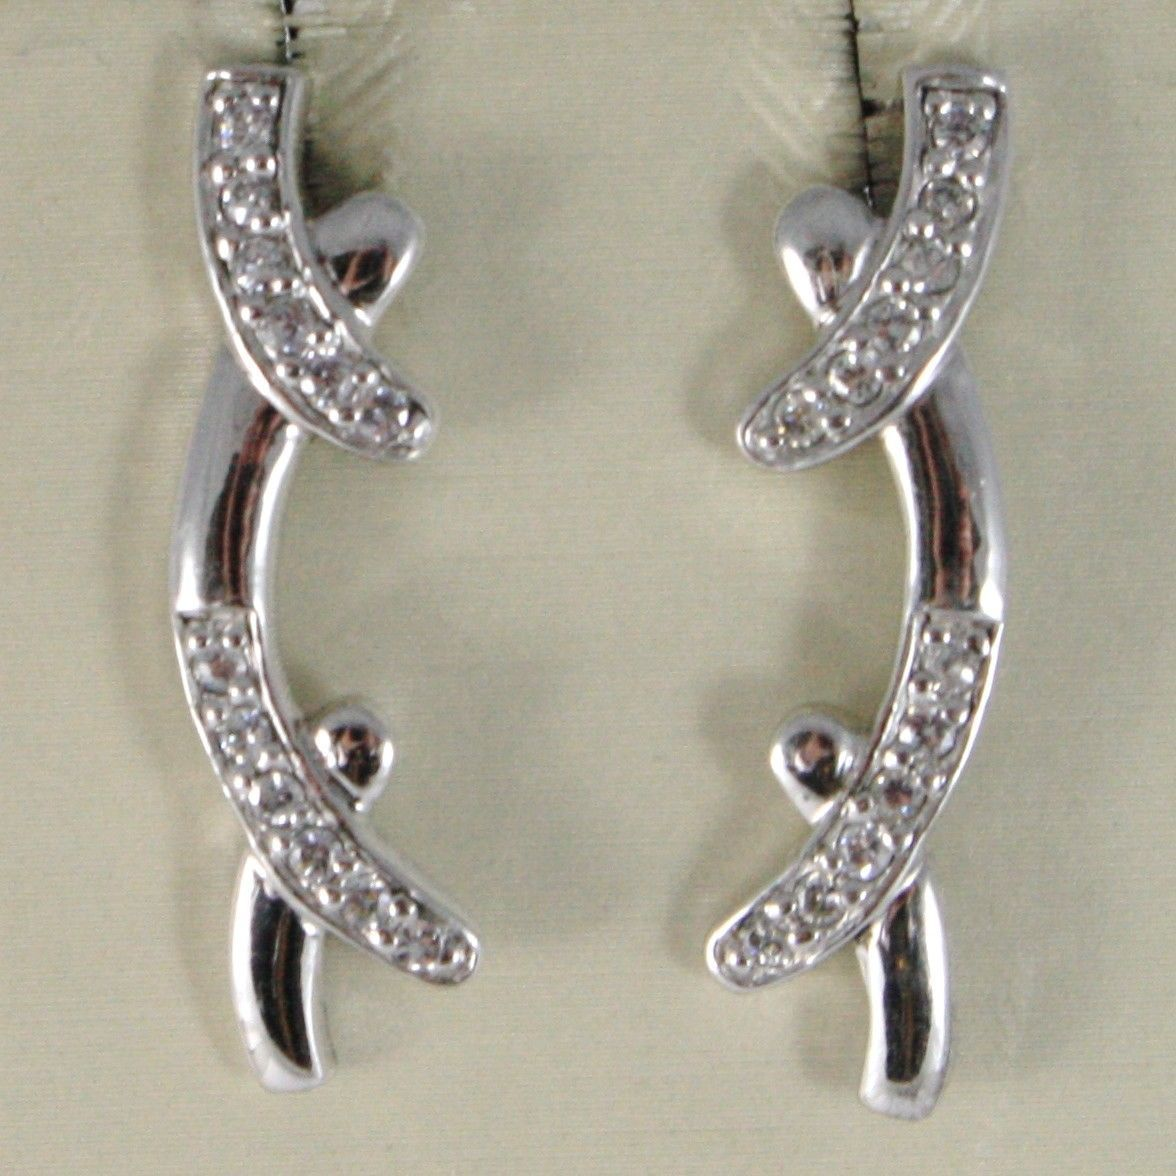 EARRINGS SILVER 925 TRIED AND TESTED A BAR LINE RIGID WITH ZIRCON CUBIC WHITE